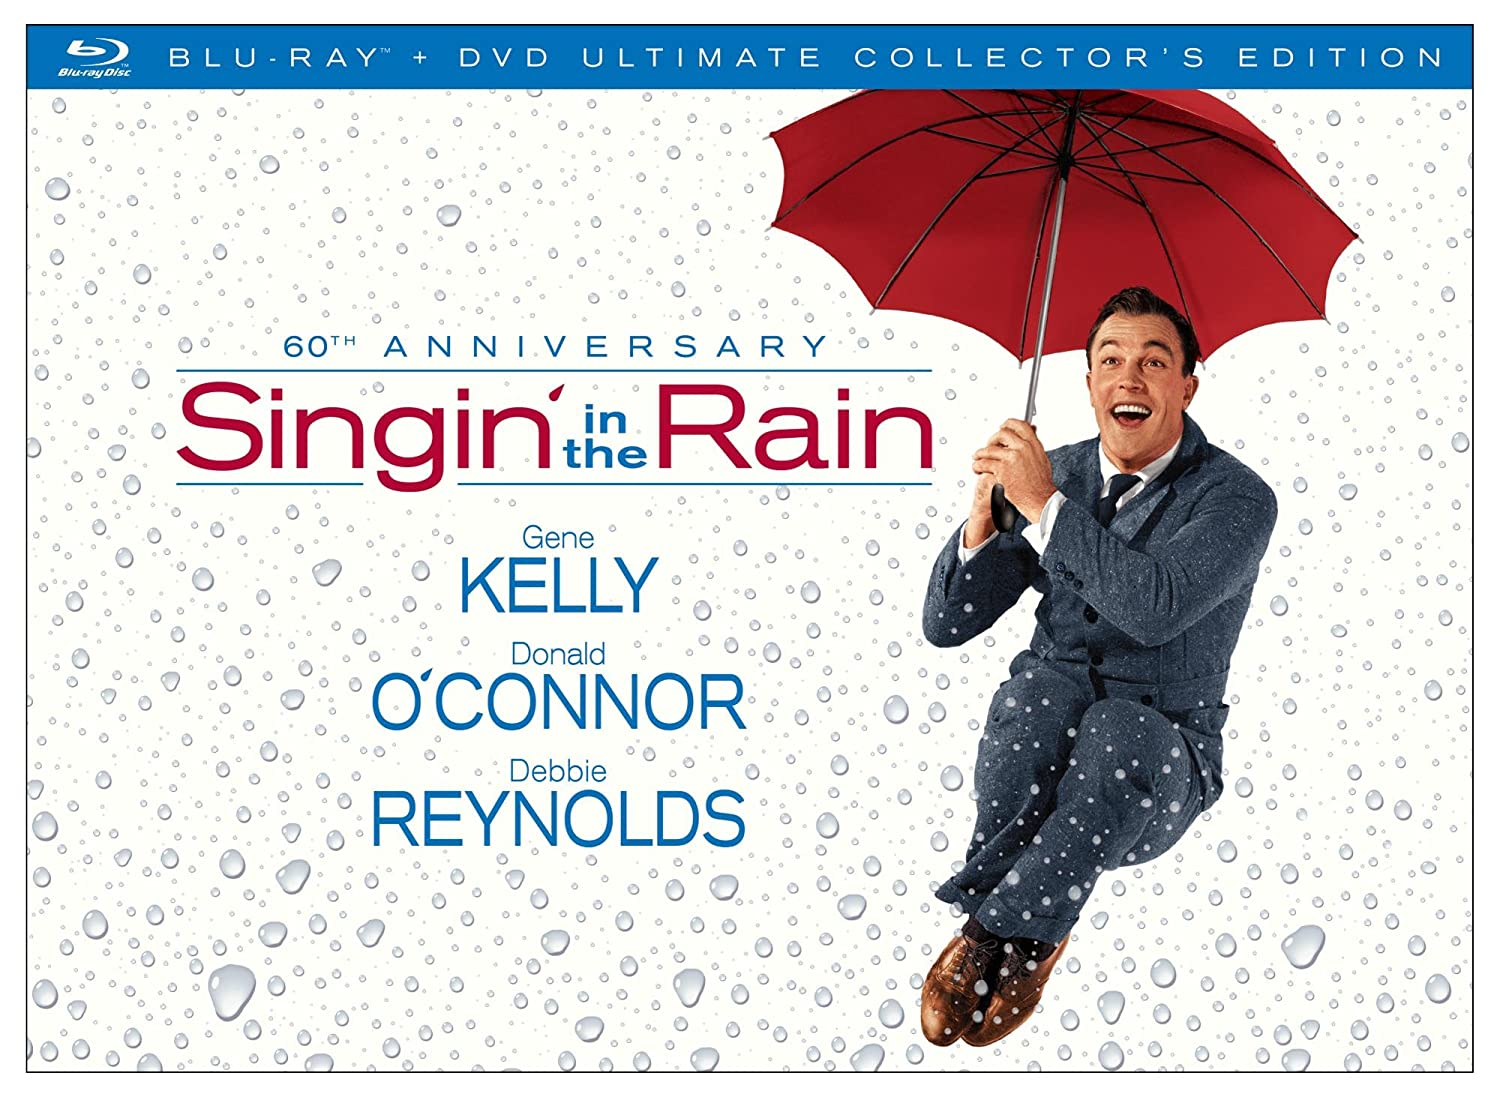 Singin' In The Rain: 60th Anniversary Collector's Edition (Blu-ray/DVD Combo) $35.49